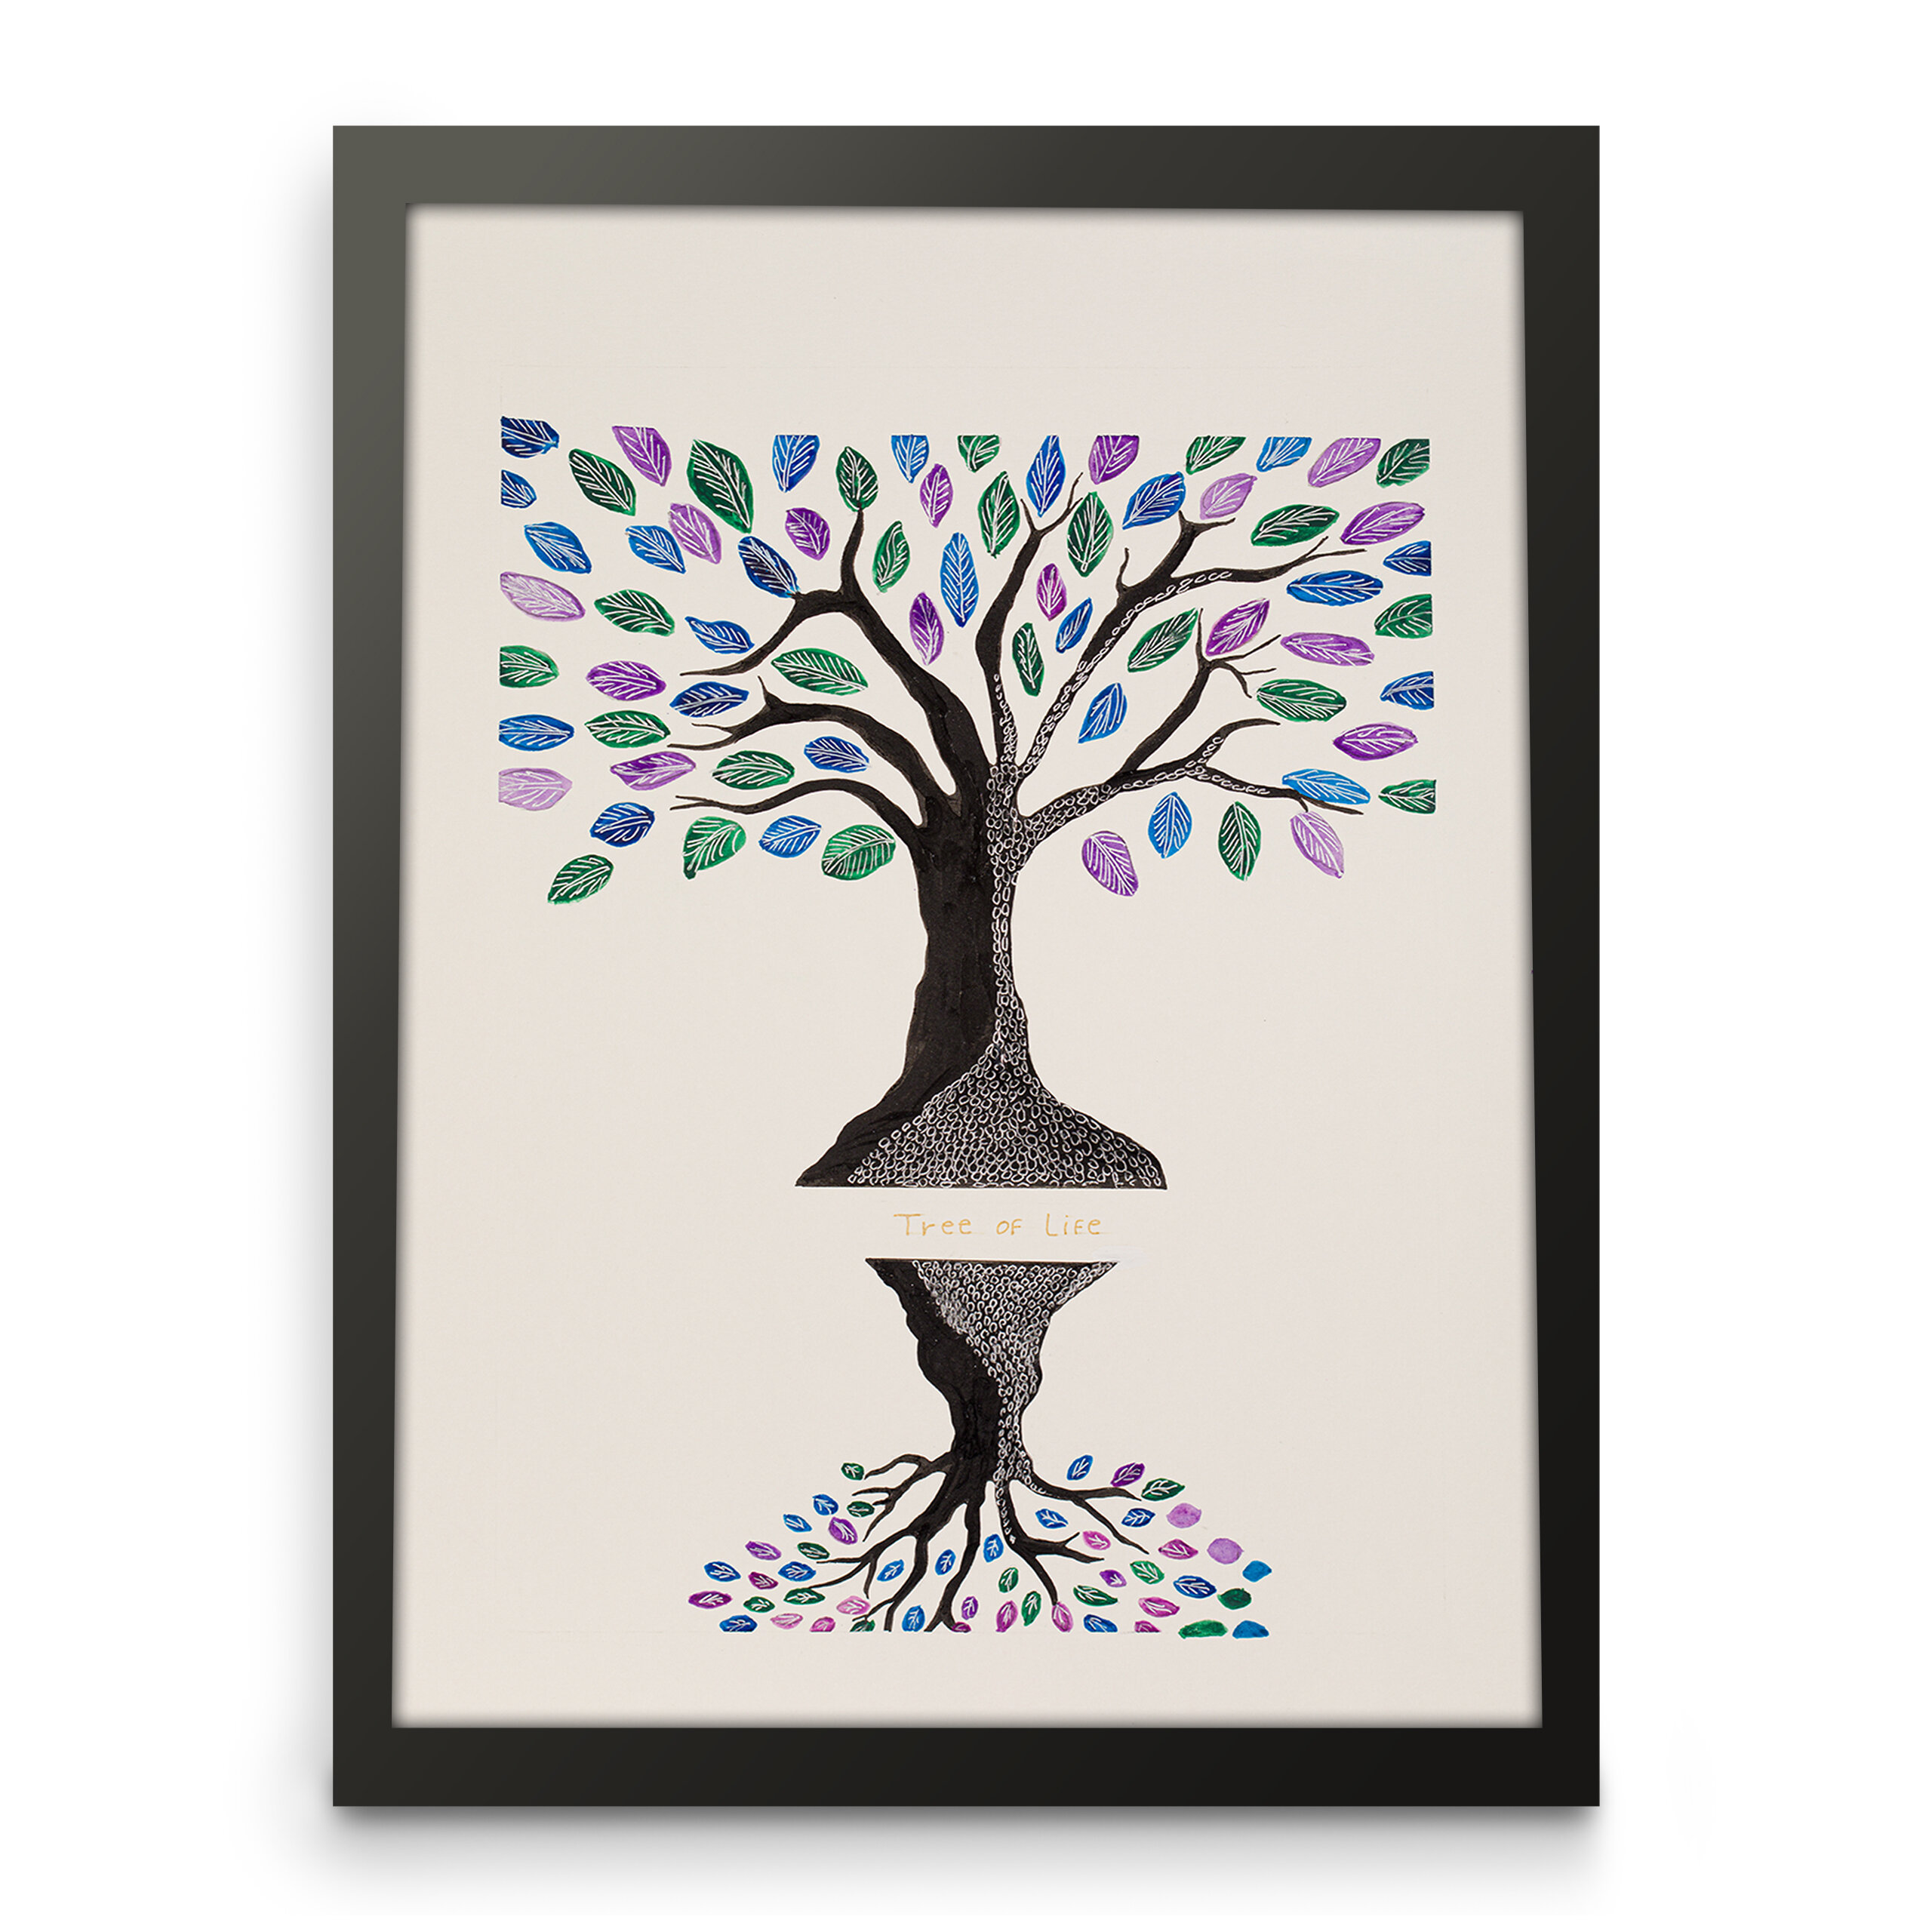 Tree of life, Paper art print, Front view